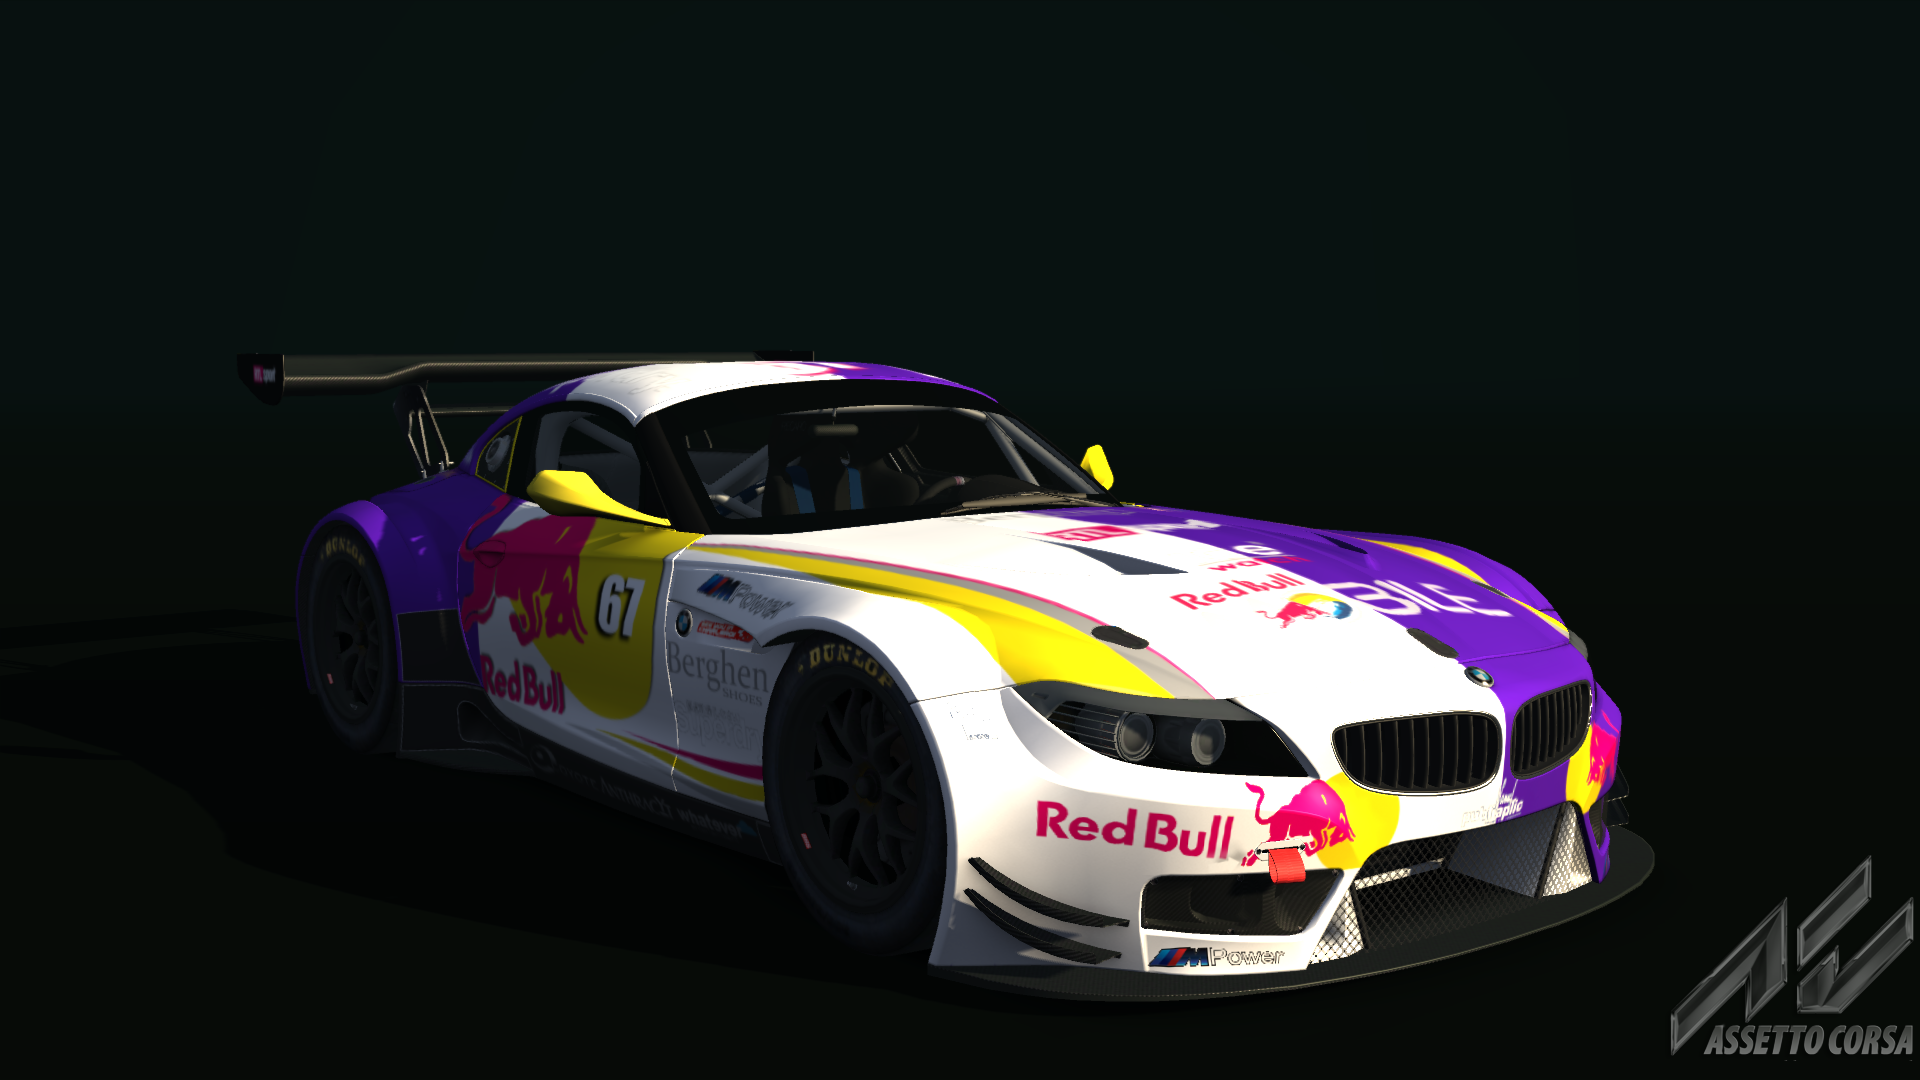 Showroom_bmw_z4_gt3_3-2-2014-19-22-30.png